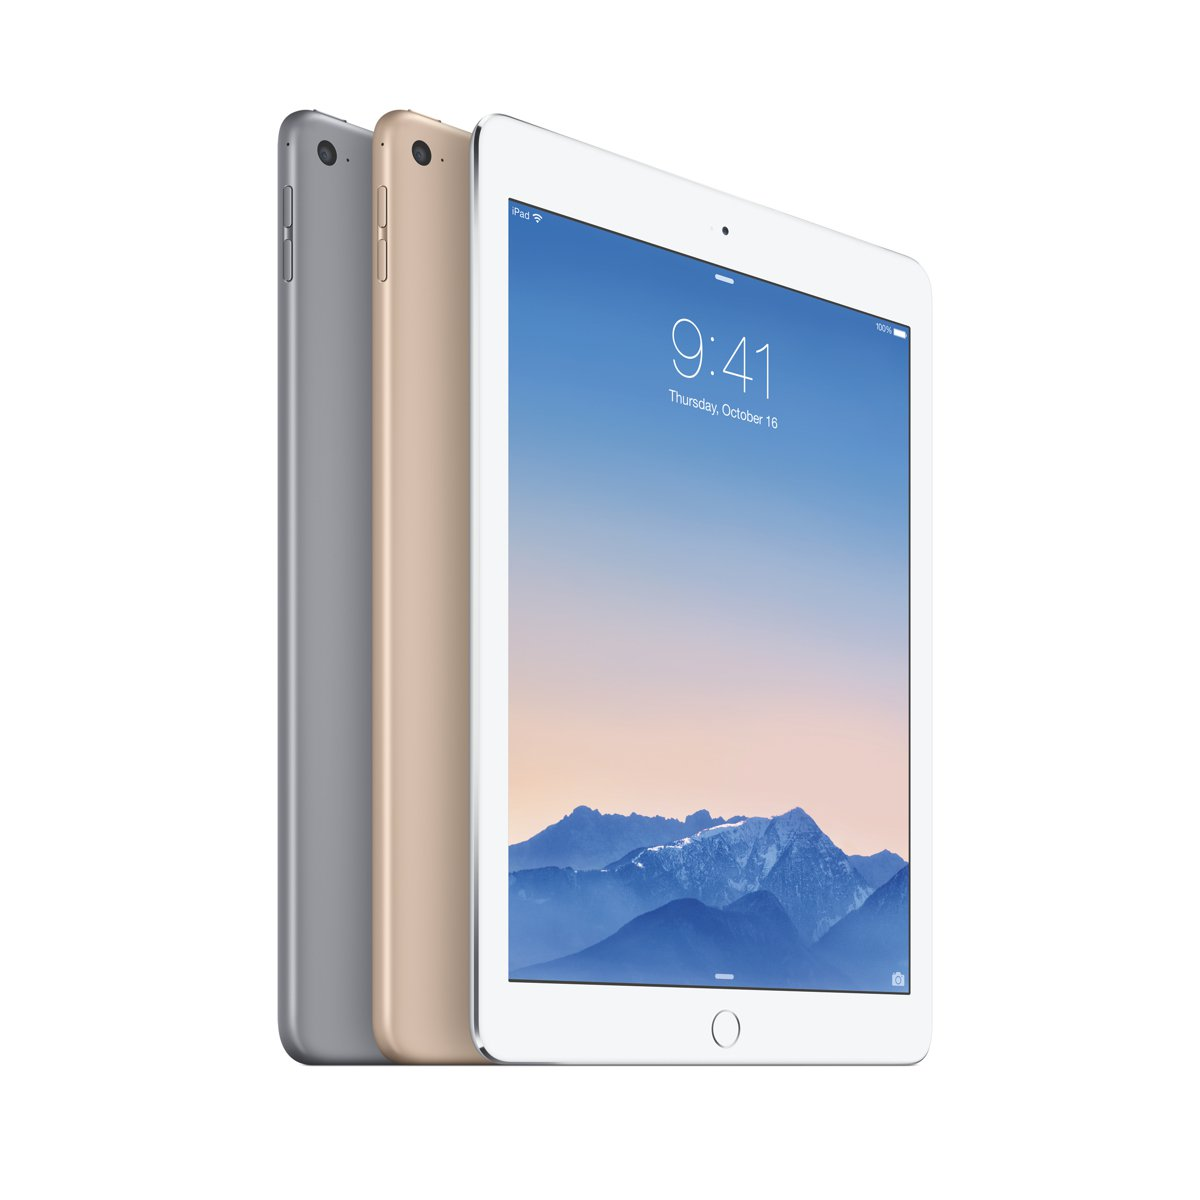 Save up to $100 with these new iPad Air 2 deals.